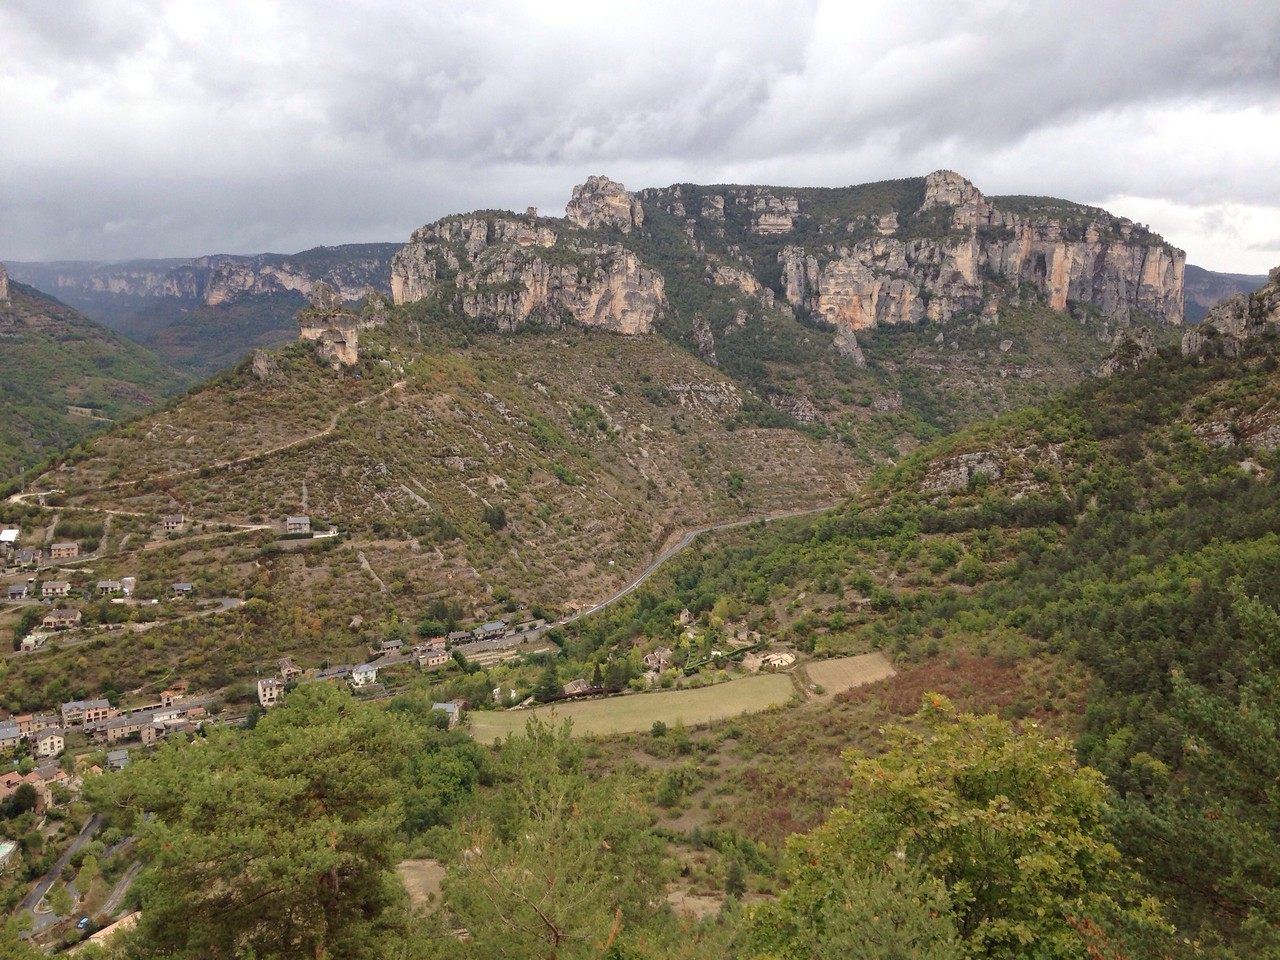 It starters to rain again as we left, but we were treated to a gorgeous view again to La Jonte and Le Tarn gorges as we headed back!